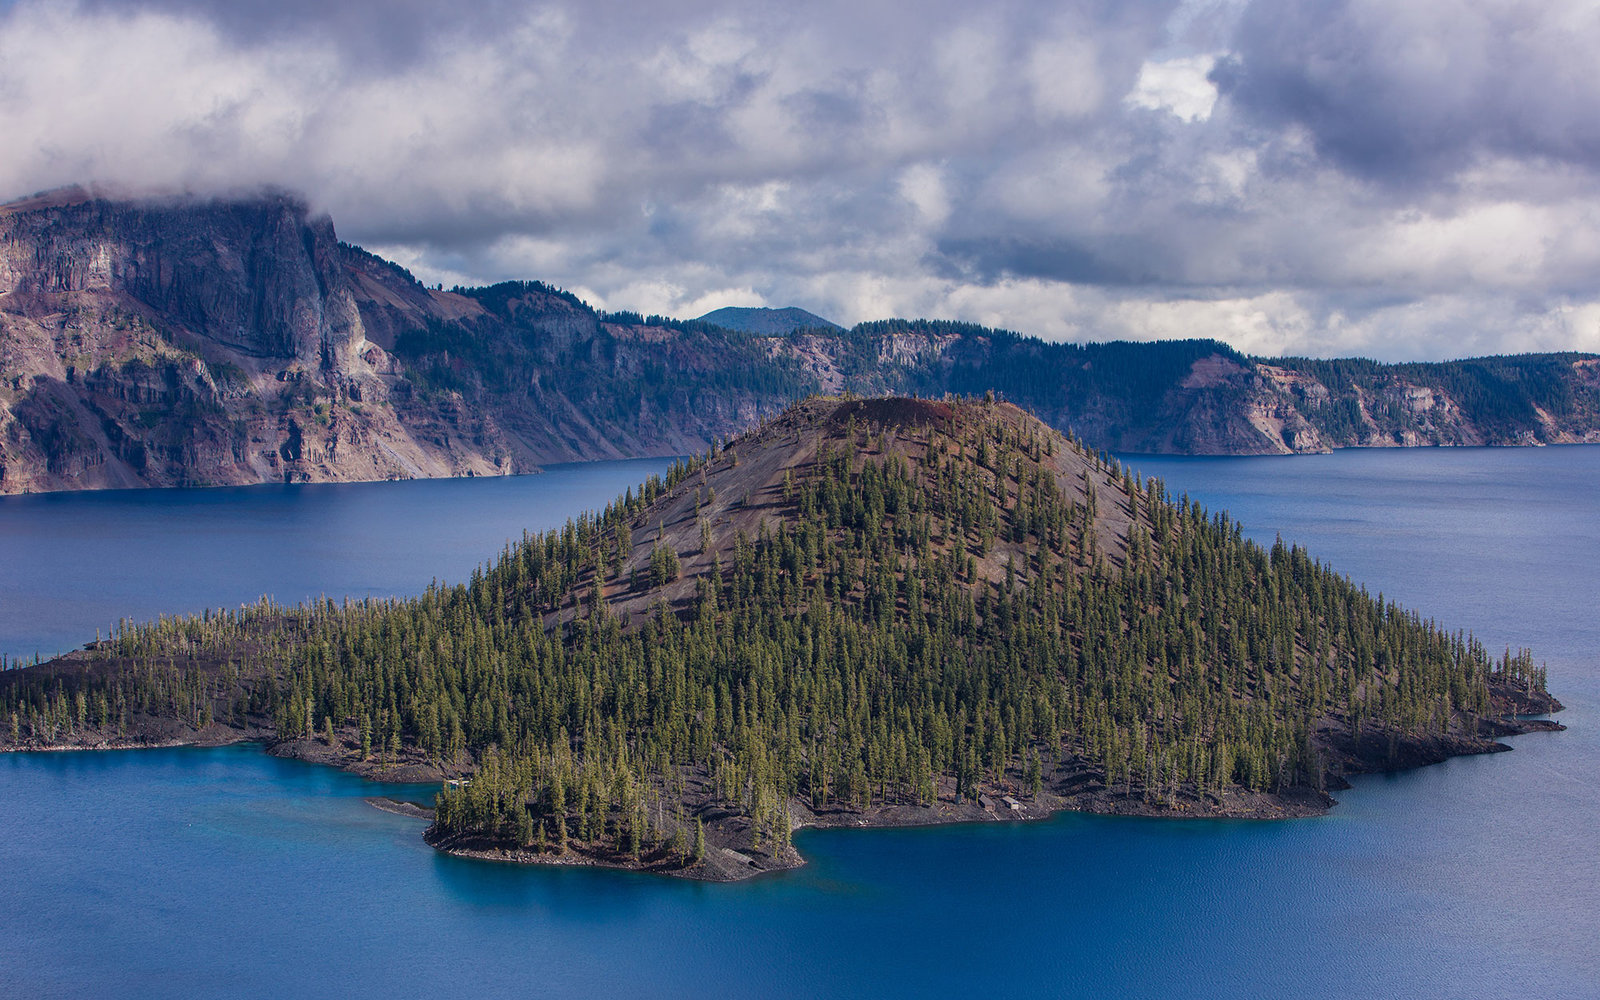 Crater Lake National Park Guide Travel Leisure - 10 cool landmarks in crater lake national park